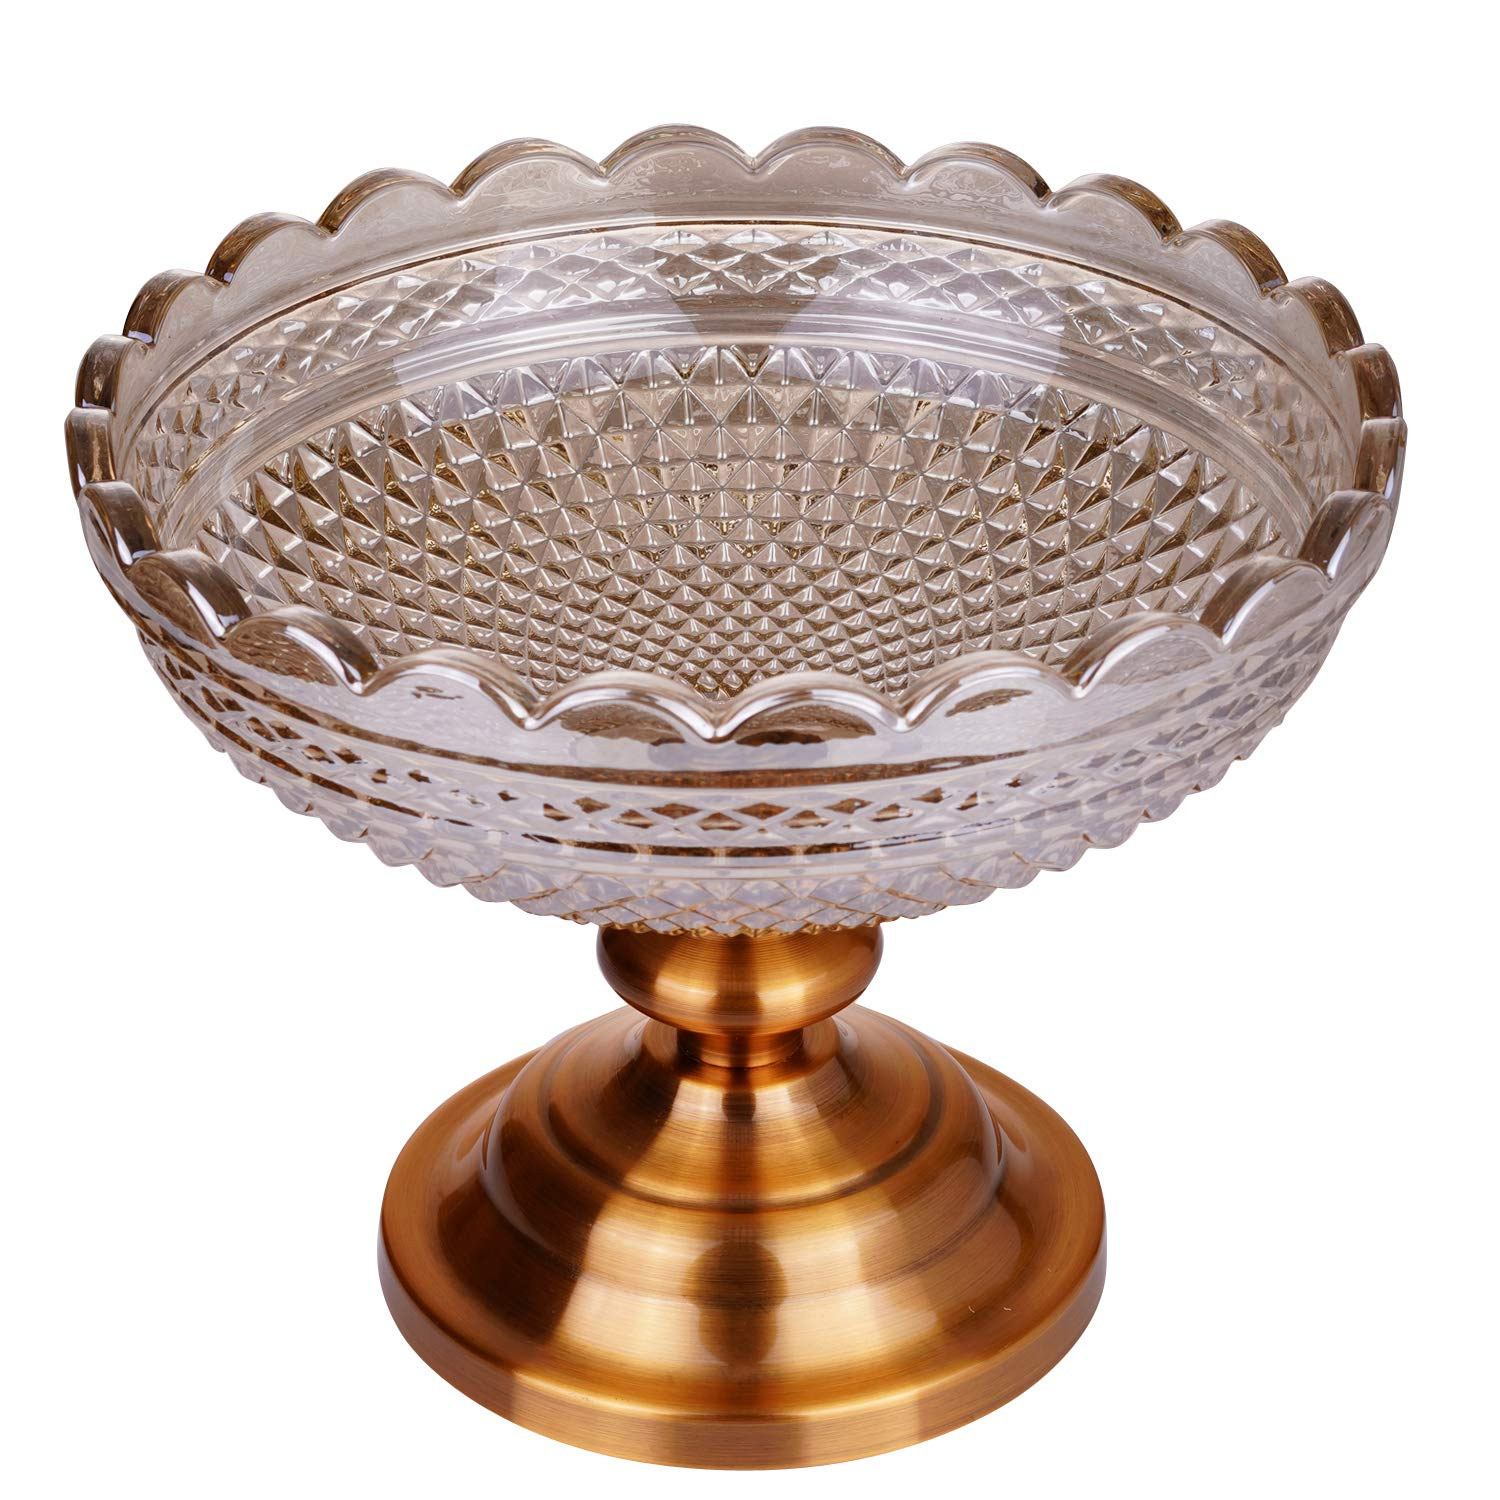 Fruit Tray, Fruit Bowl, Cake Stand, Serving Platter With Round Glass Plate and Antique Gold Metal Pedestal Dessert Cupcake Display Holder for Birthday, Party, Wedding, Home (Golden)